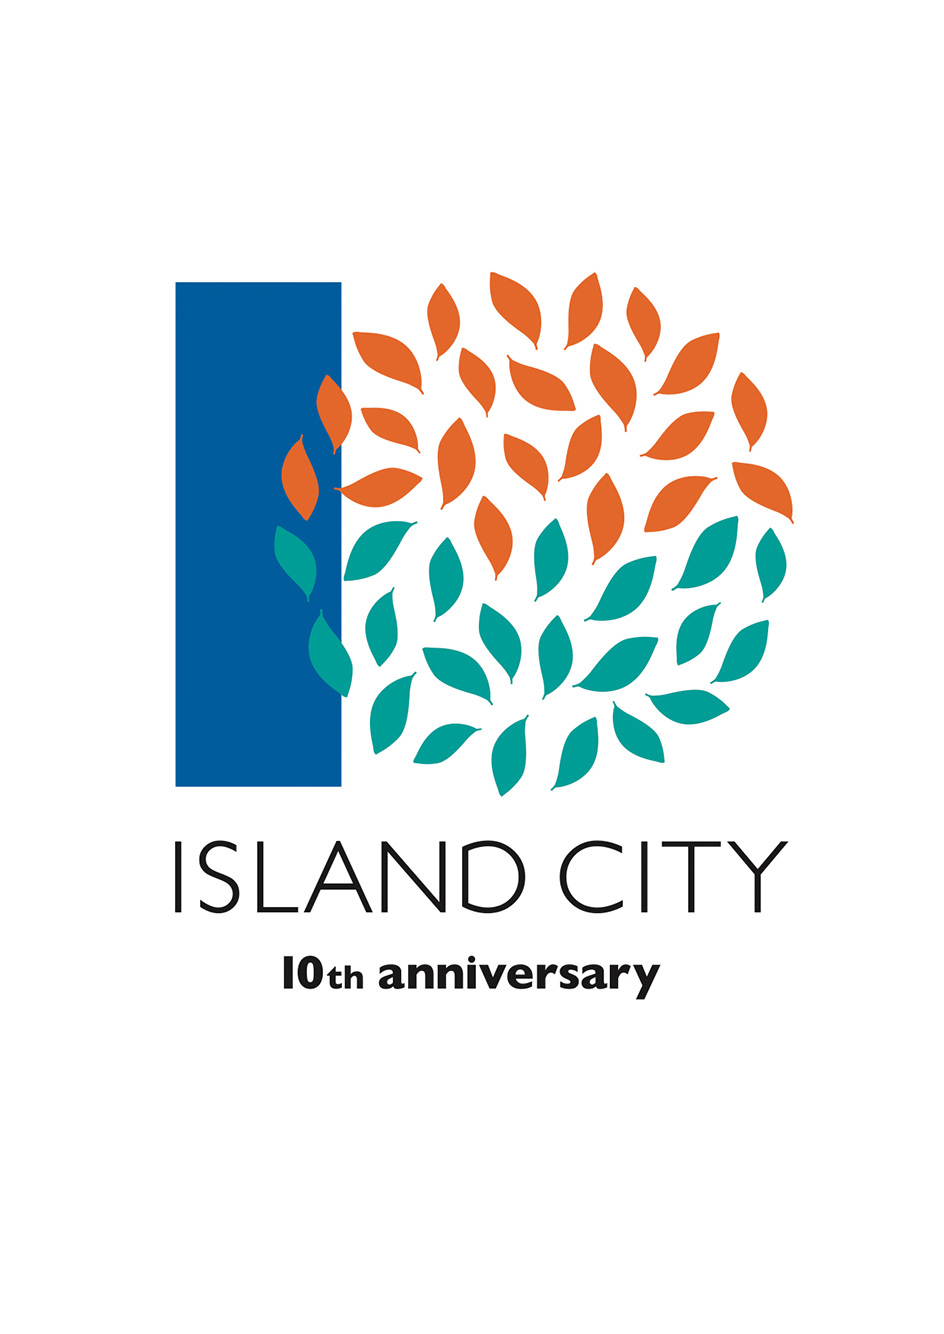 ISLAND CITY 10TH ANNIVERSARYGRAPHIC